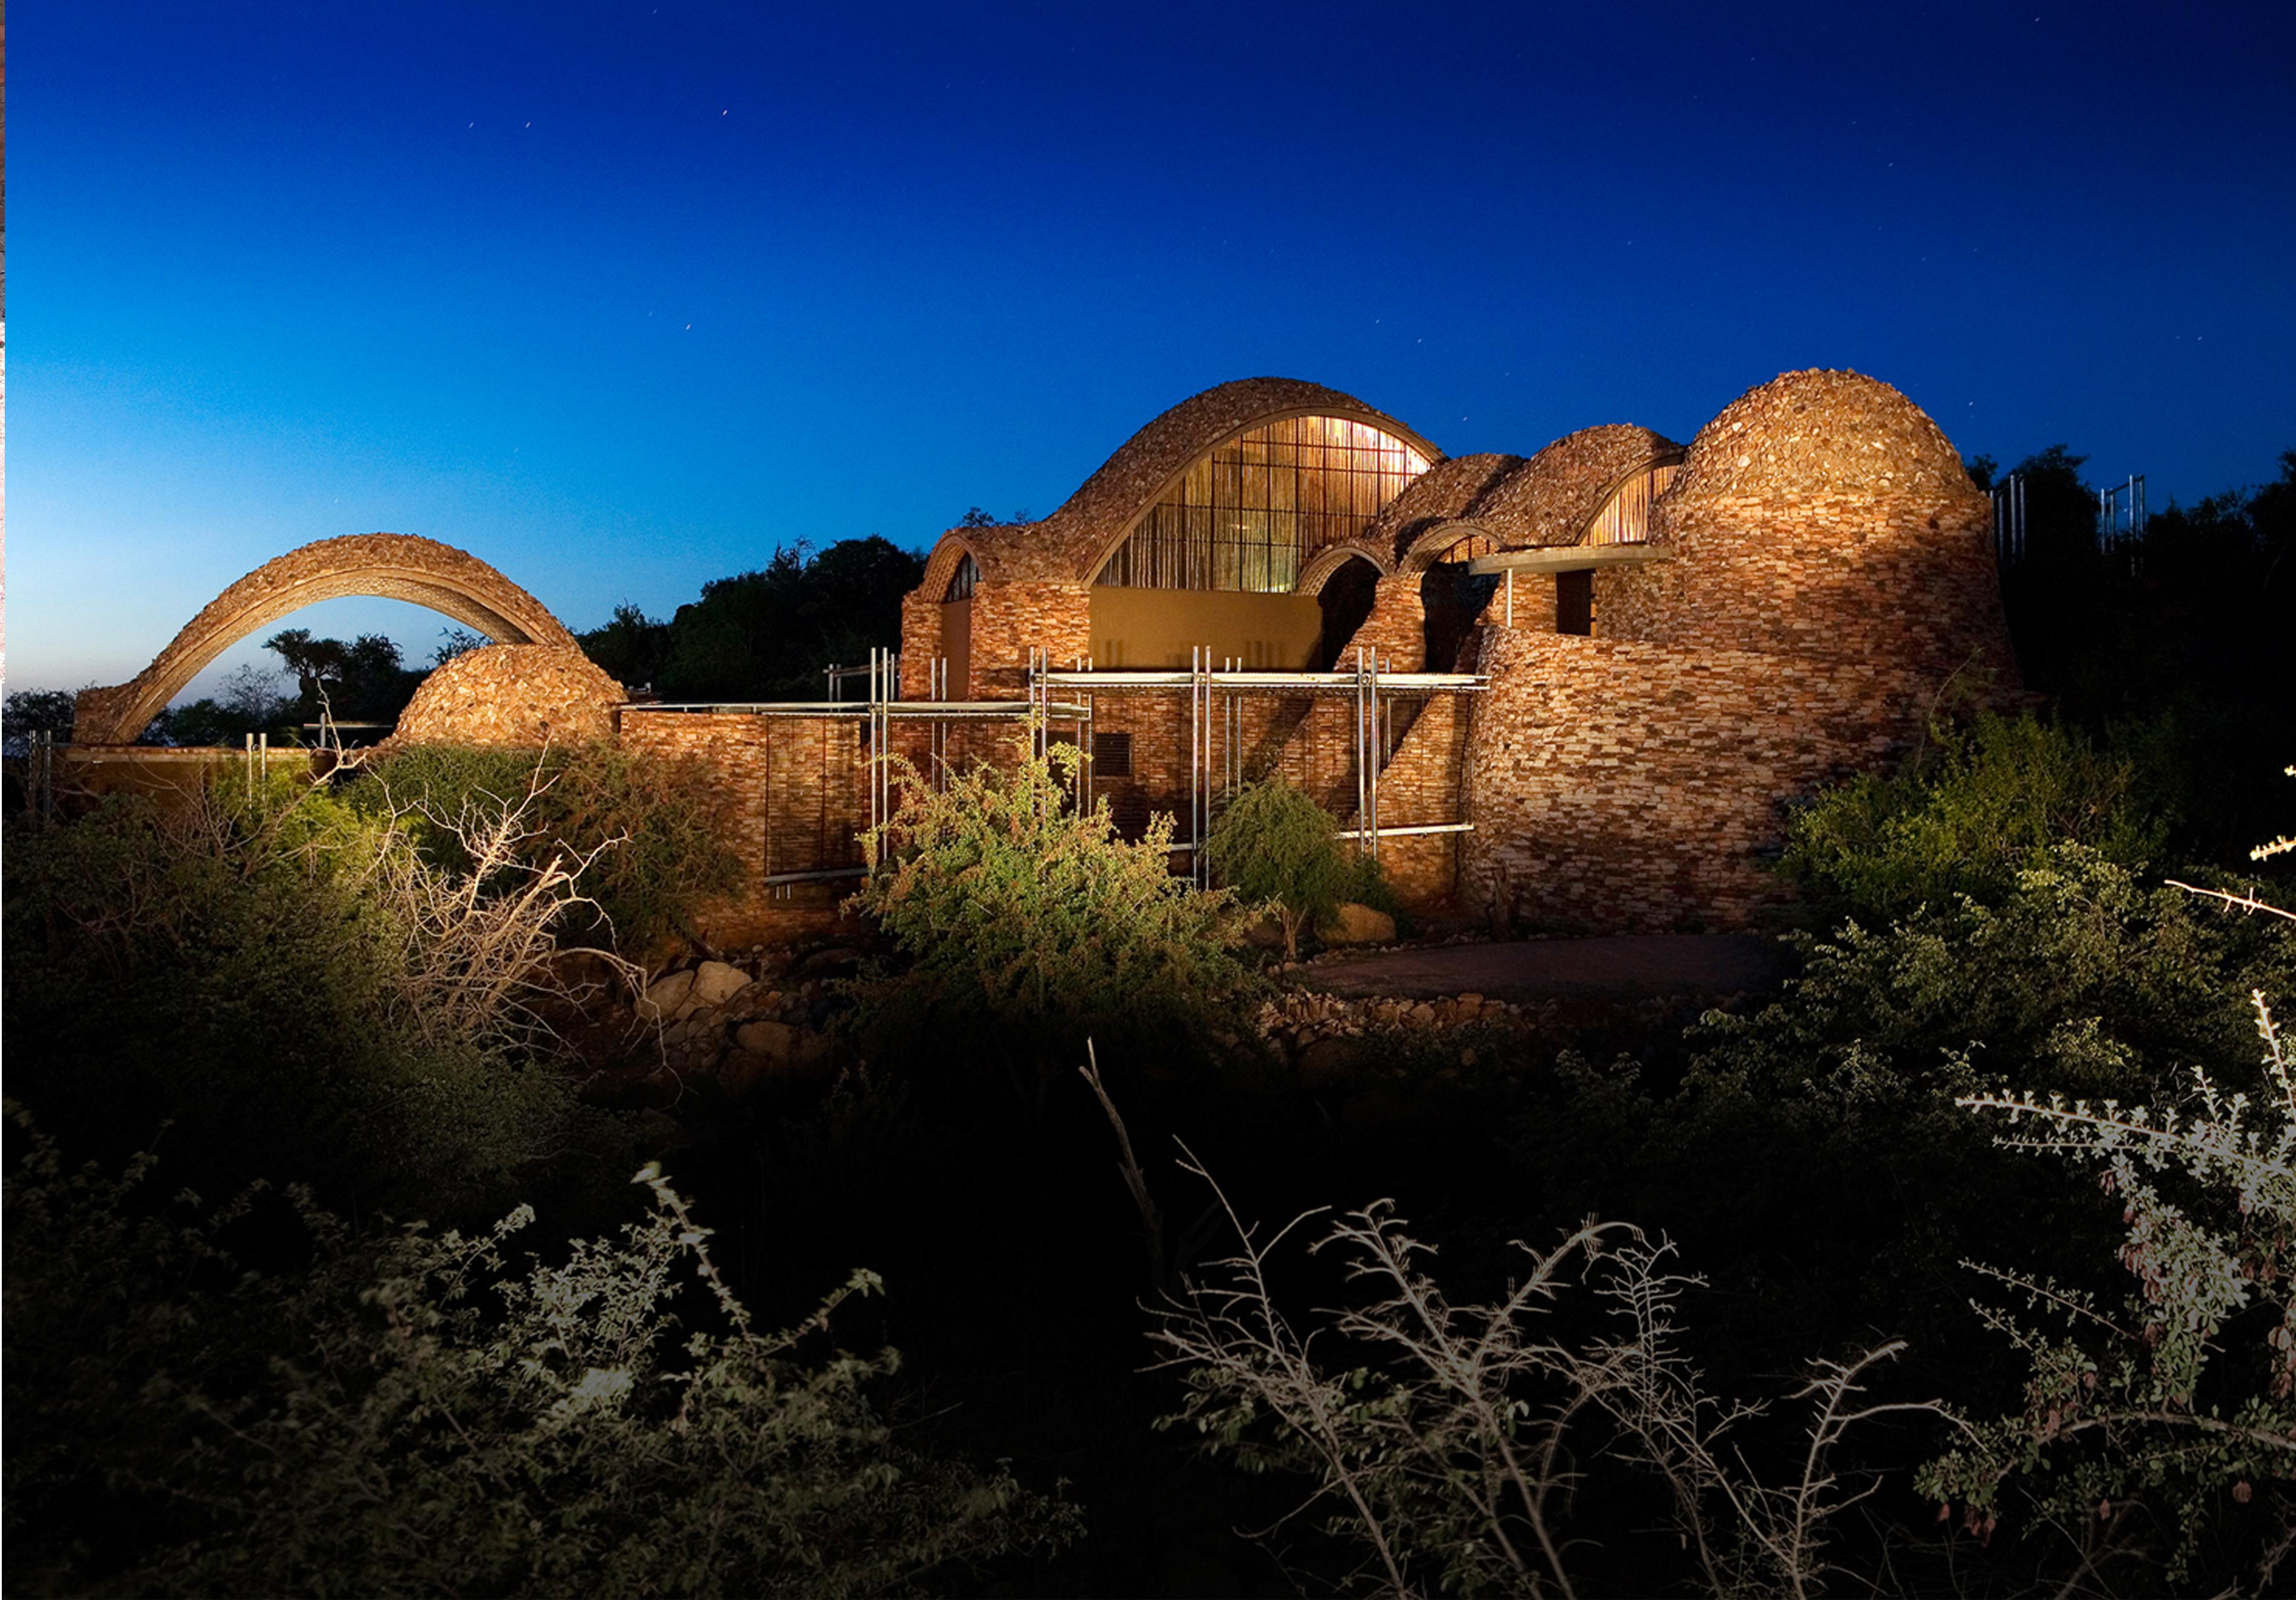 Mapungubwe National Park Interpretation Centre by Michael Ramage, Peter Rich and John Ochsendorf has been shortlisted for the Aga Kahn Award for Architecture